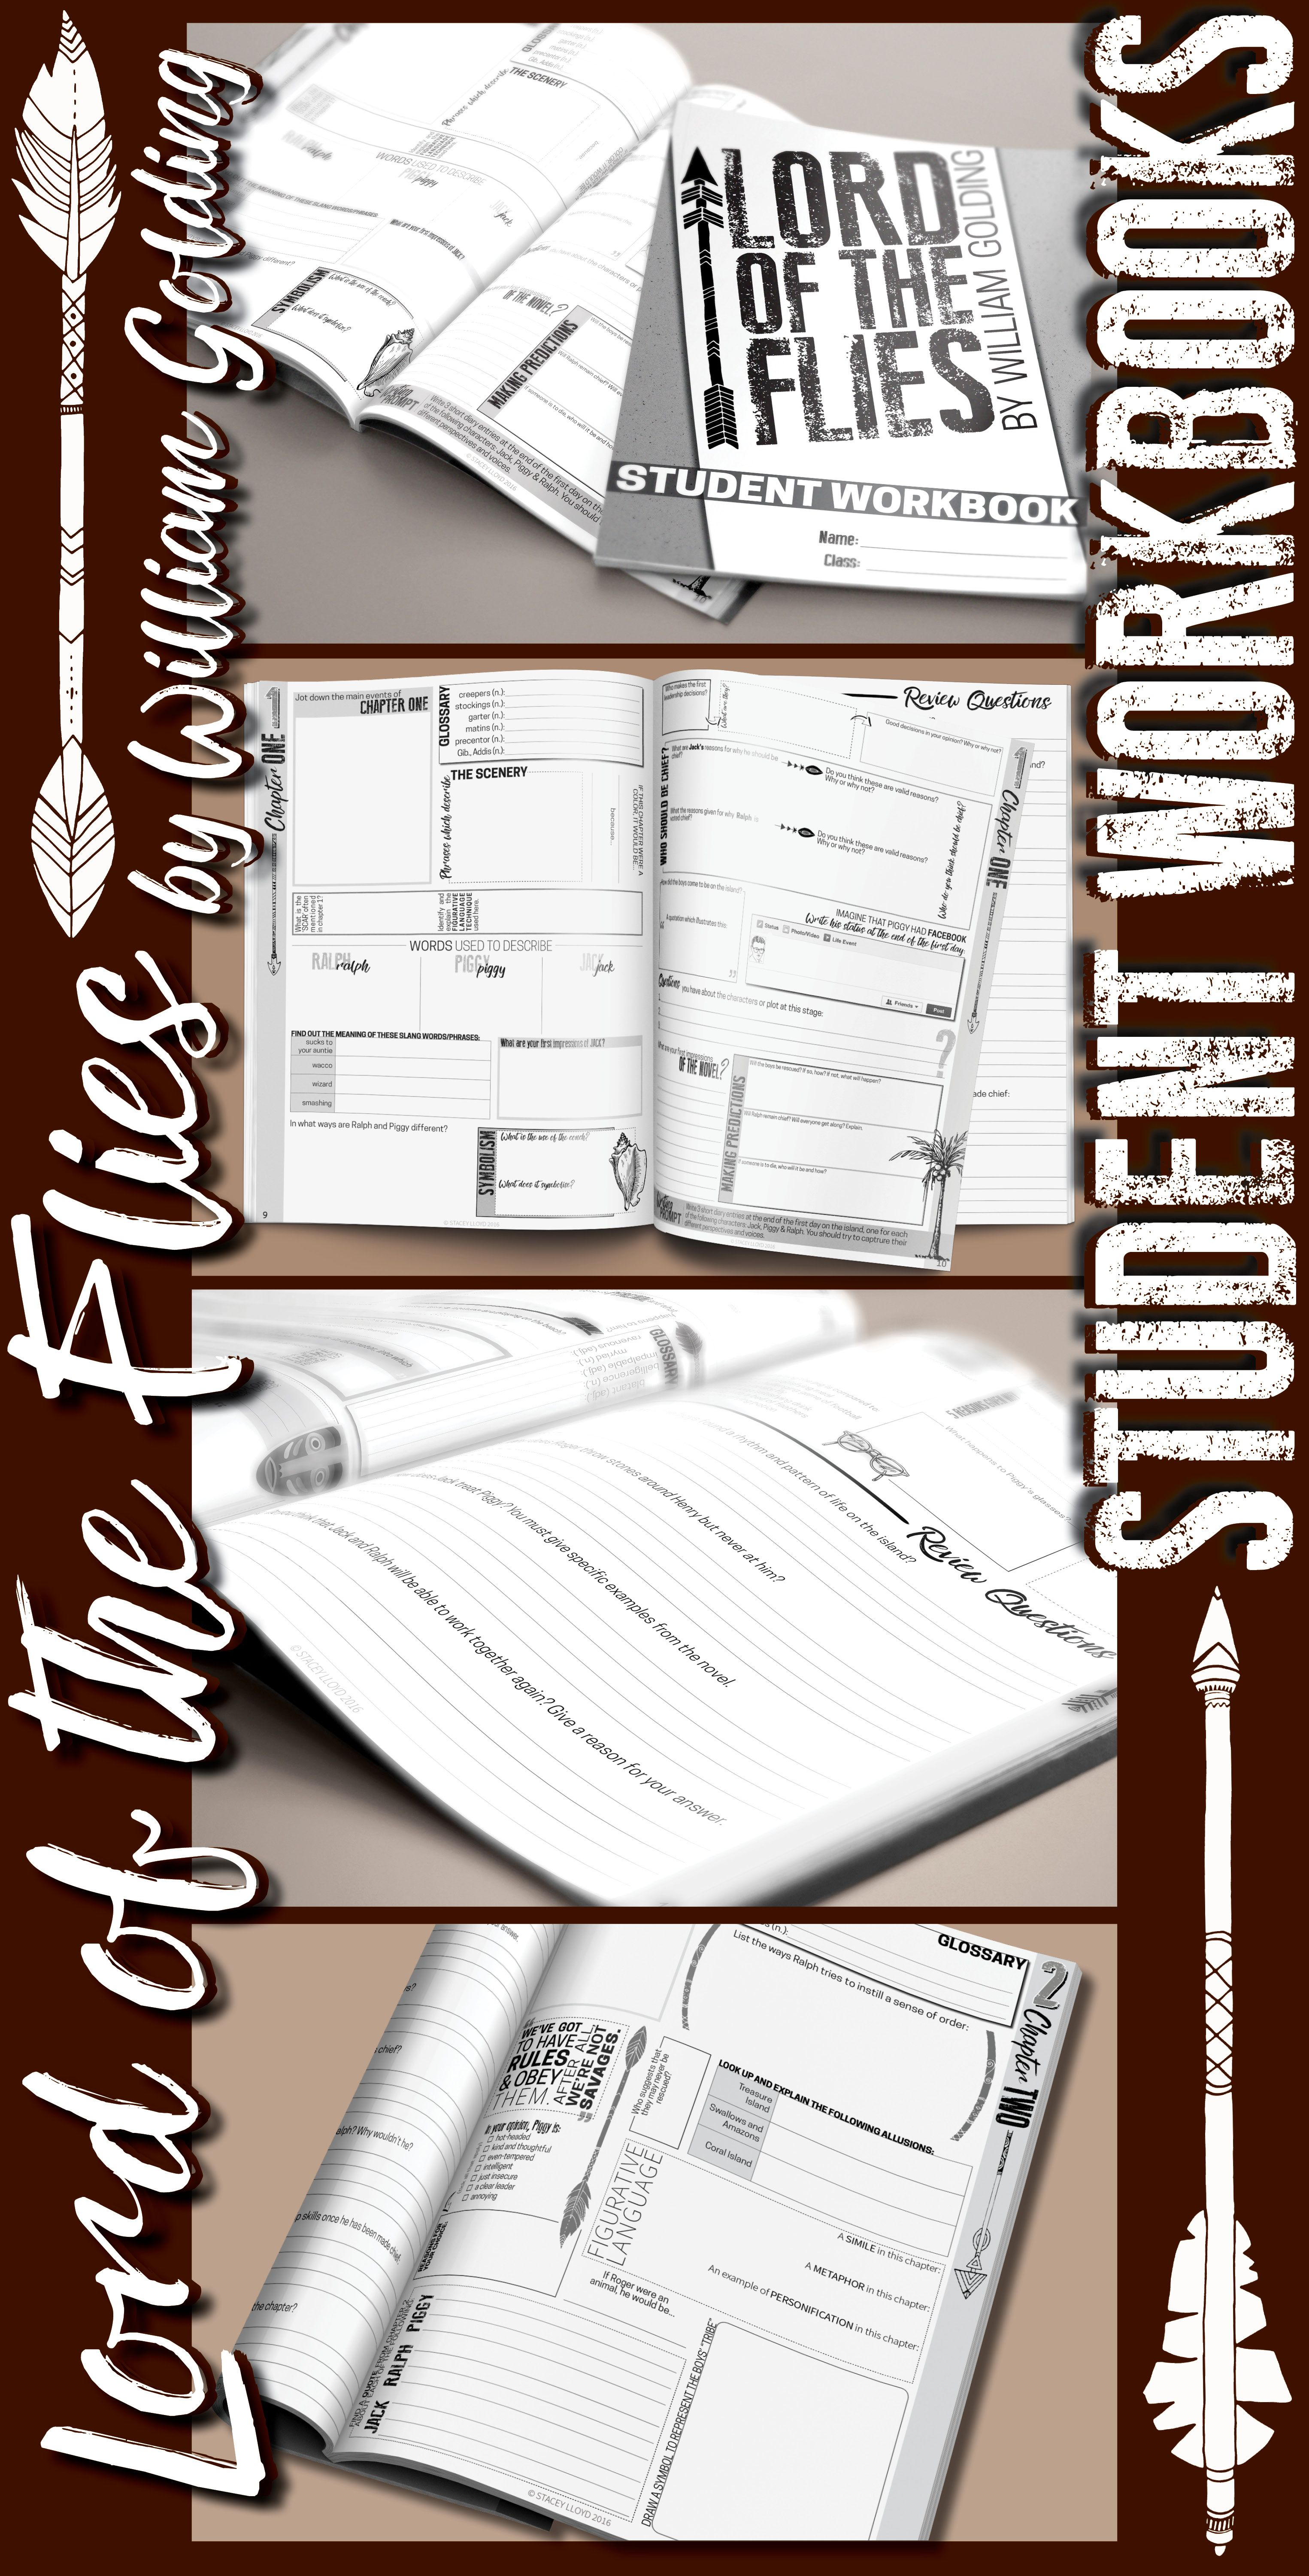 Lord Of The Flies Student Workbooks